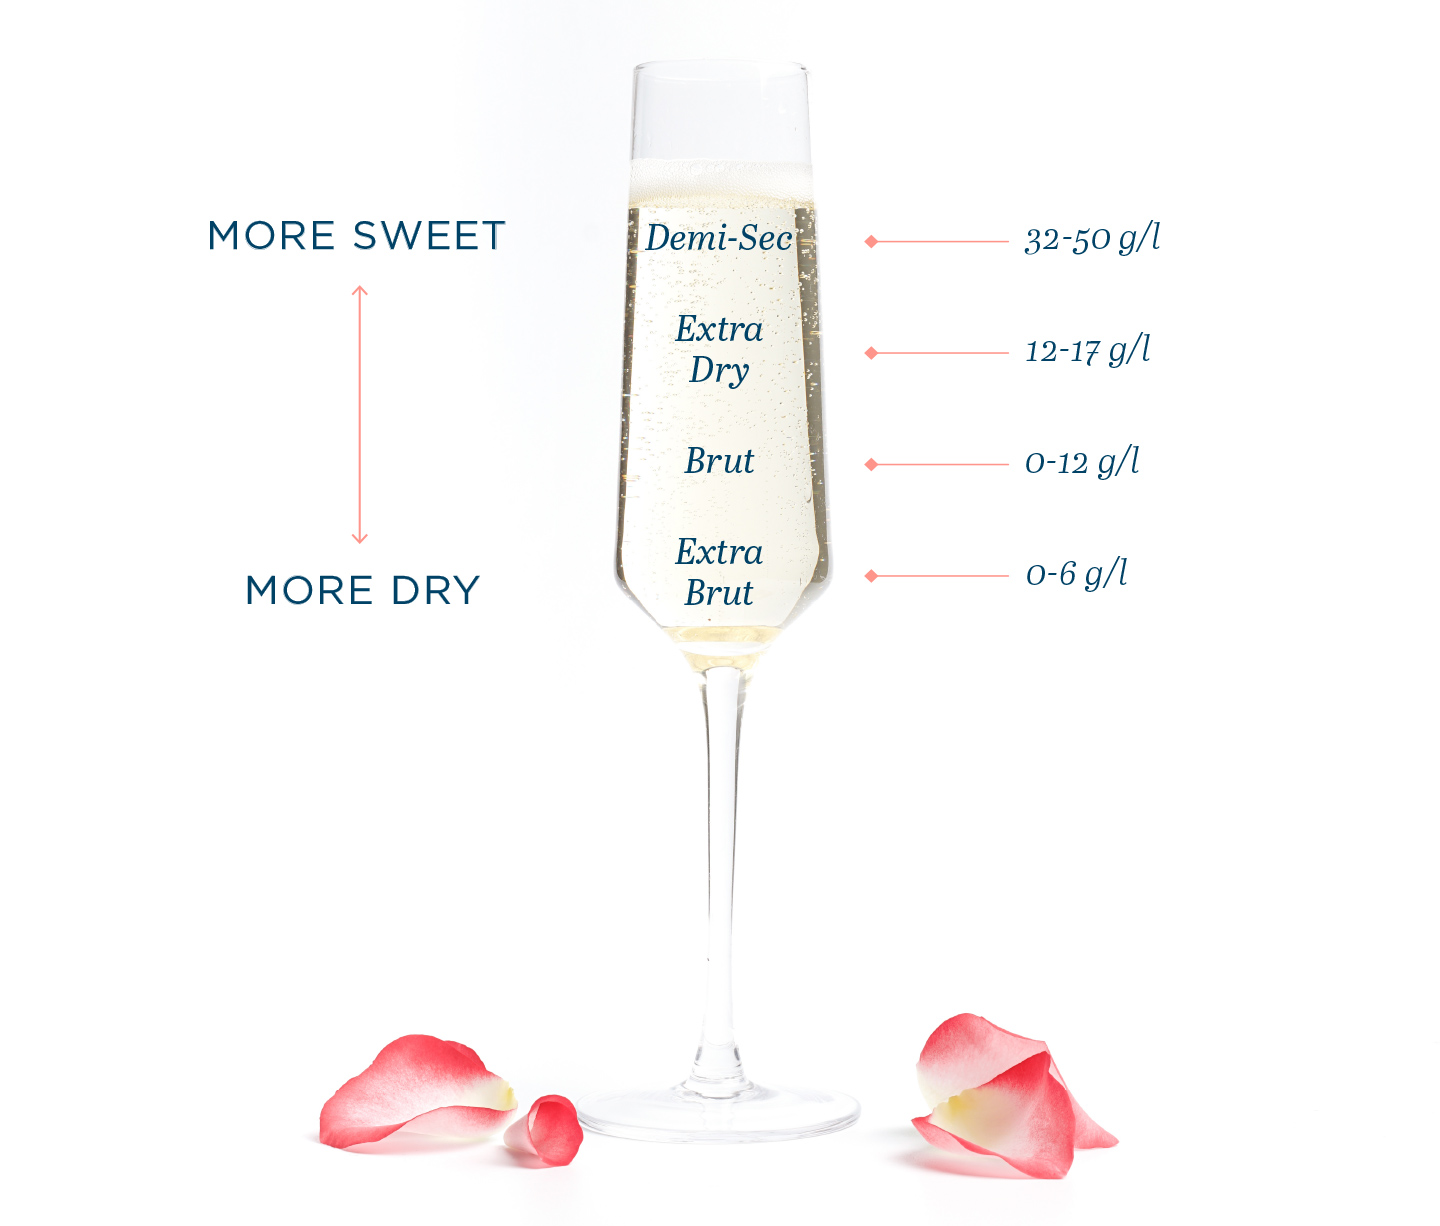 sparkling-wine-dryness-scale